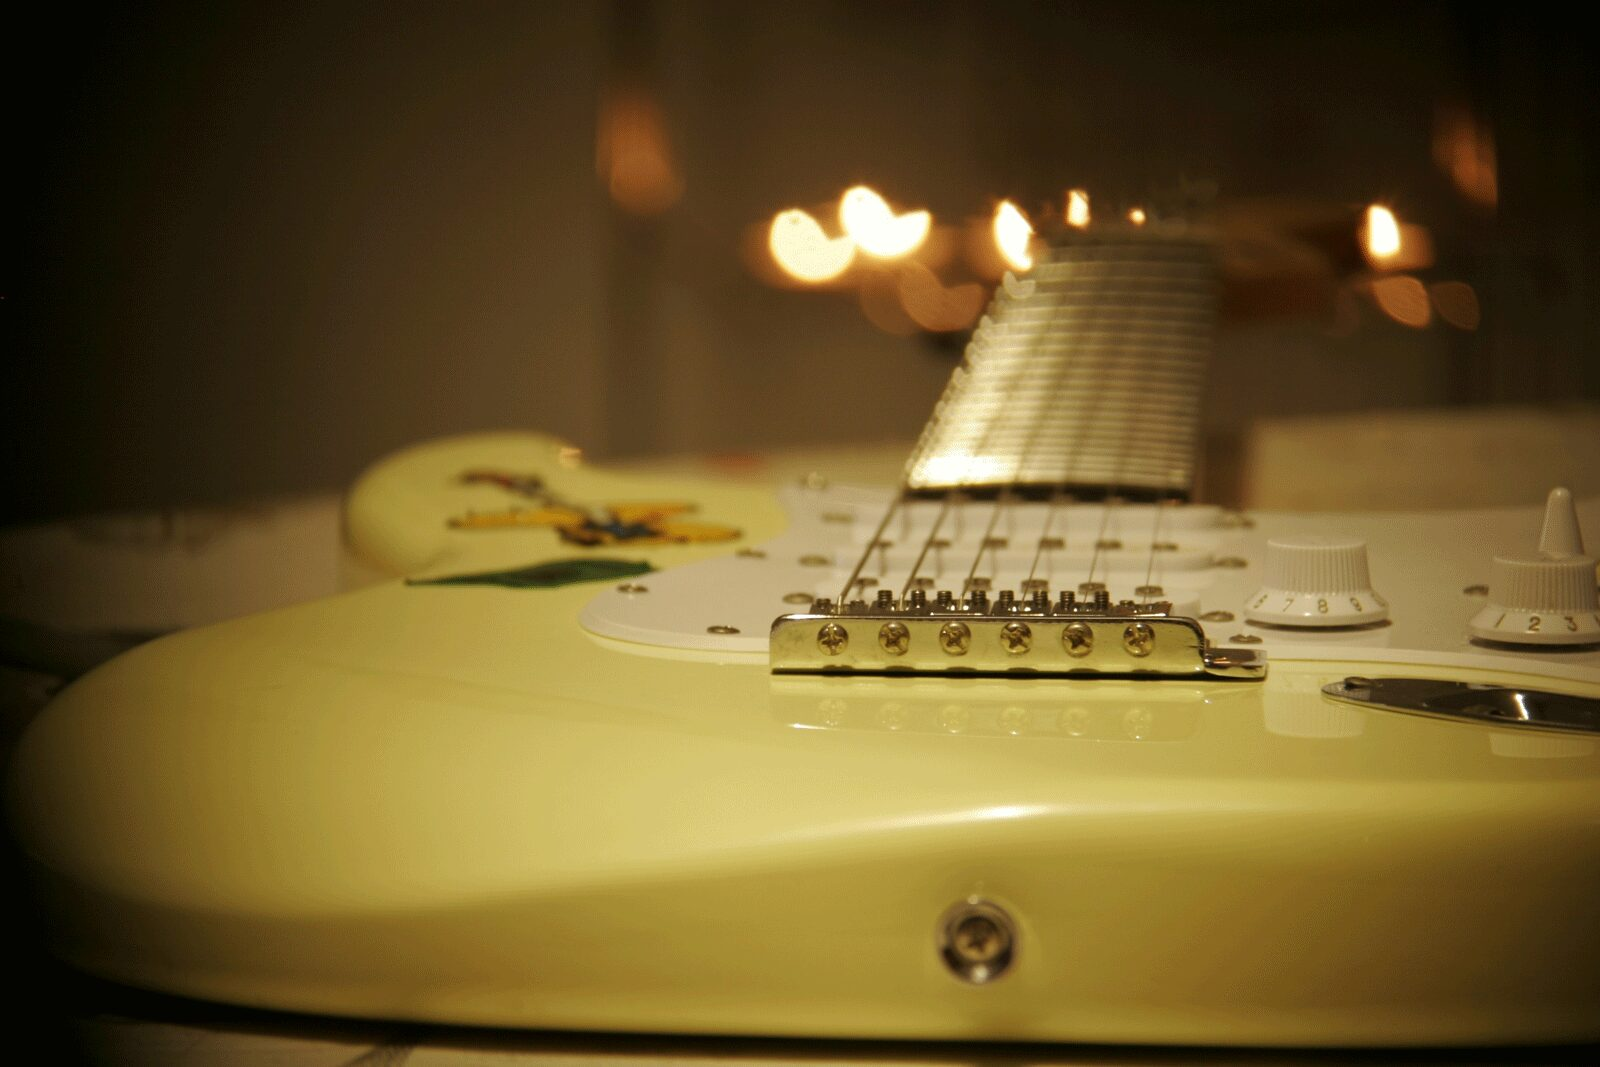 Yellow Electric Guitar | The Top 6 Techniques For Practicing Electric Guitar